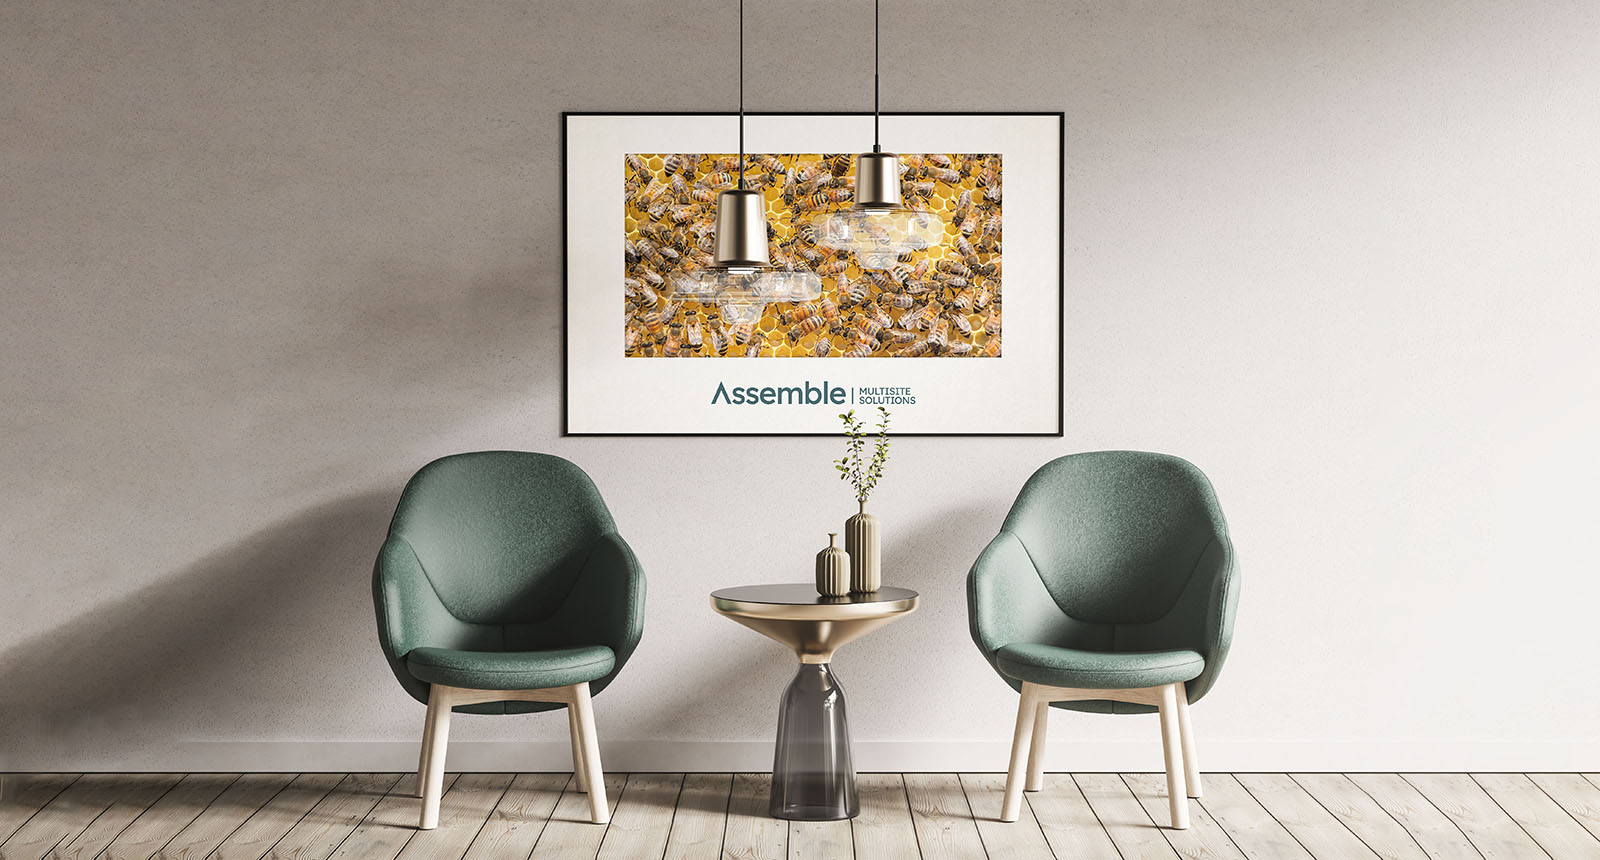 A well designed room featuring a large piece of wall art featuring a bee hive and the Pivale Assemble: Multisite Solutions branding.